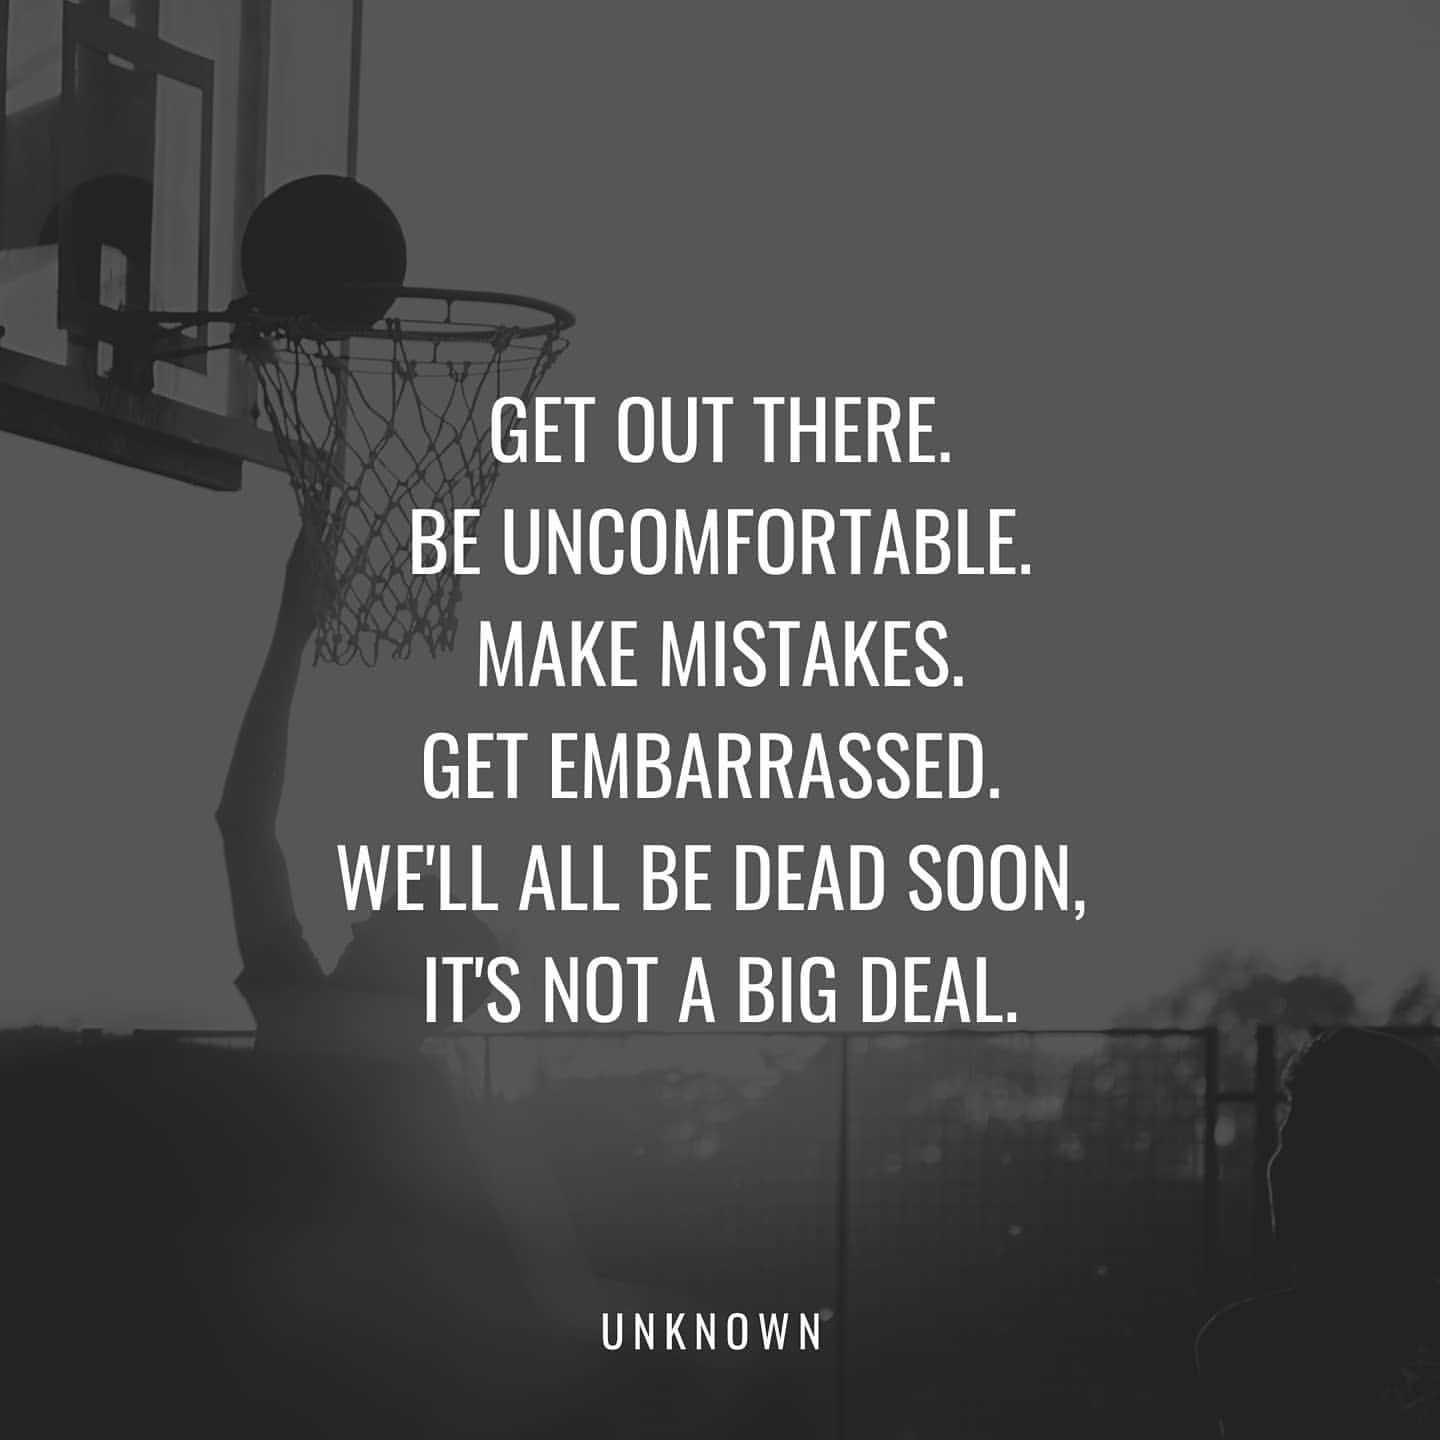 GET OUT THERE. BE UNCDMFDRTABLE. MAKE MISTAKES. GET EMBARRASSED. WE'LL ALL BE DEAD SOON, IT'S NOT A BIG DEAL. UNKNDWN https://inspirational.ly